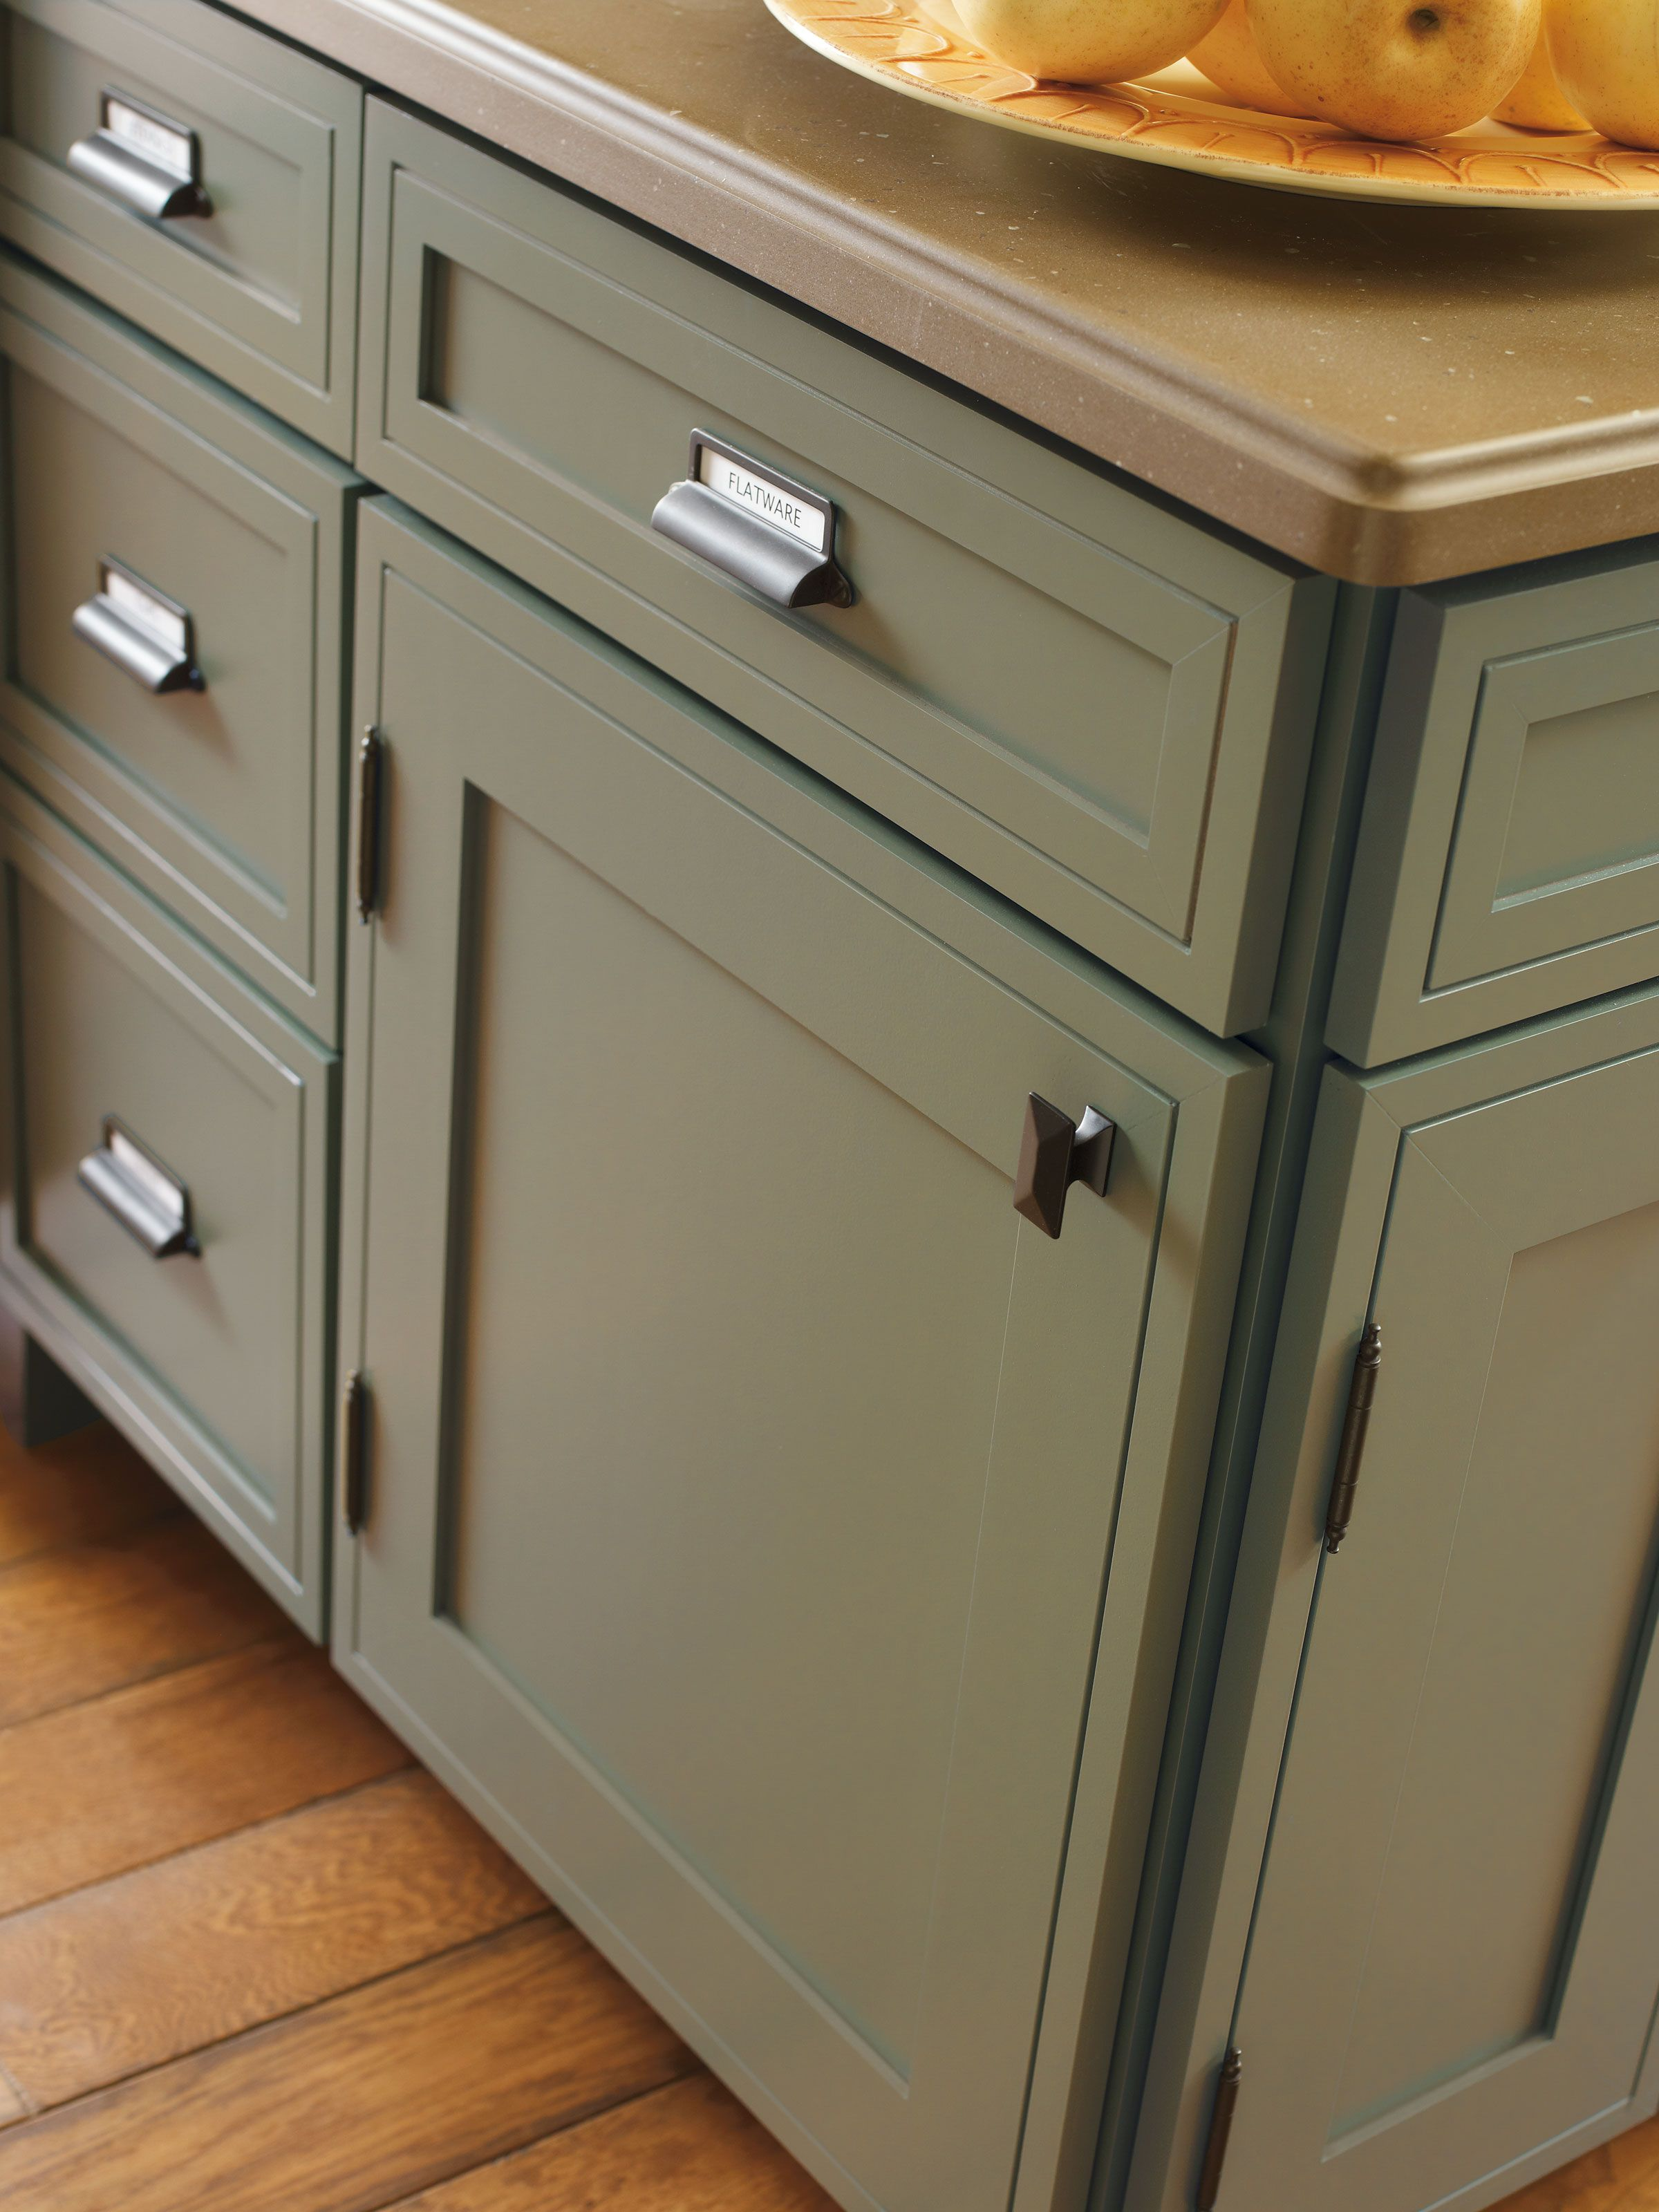 Bring Earthy Tones Into Your Kitchen With The Airedale Maple Doors In A Sweet Pea Finish By Decora Decora Cabinets Kitchen Cabinet Hardware Kitchen Cabinetry